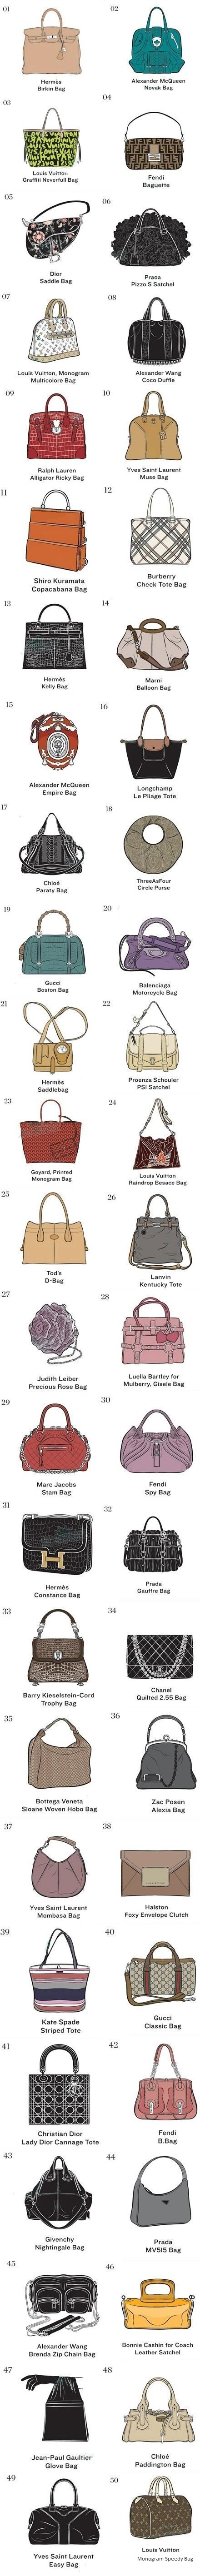 famous bags